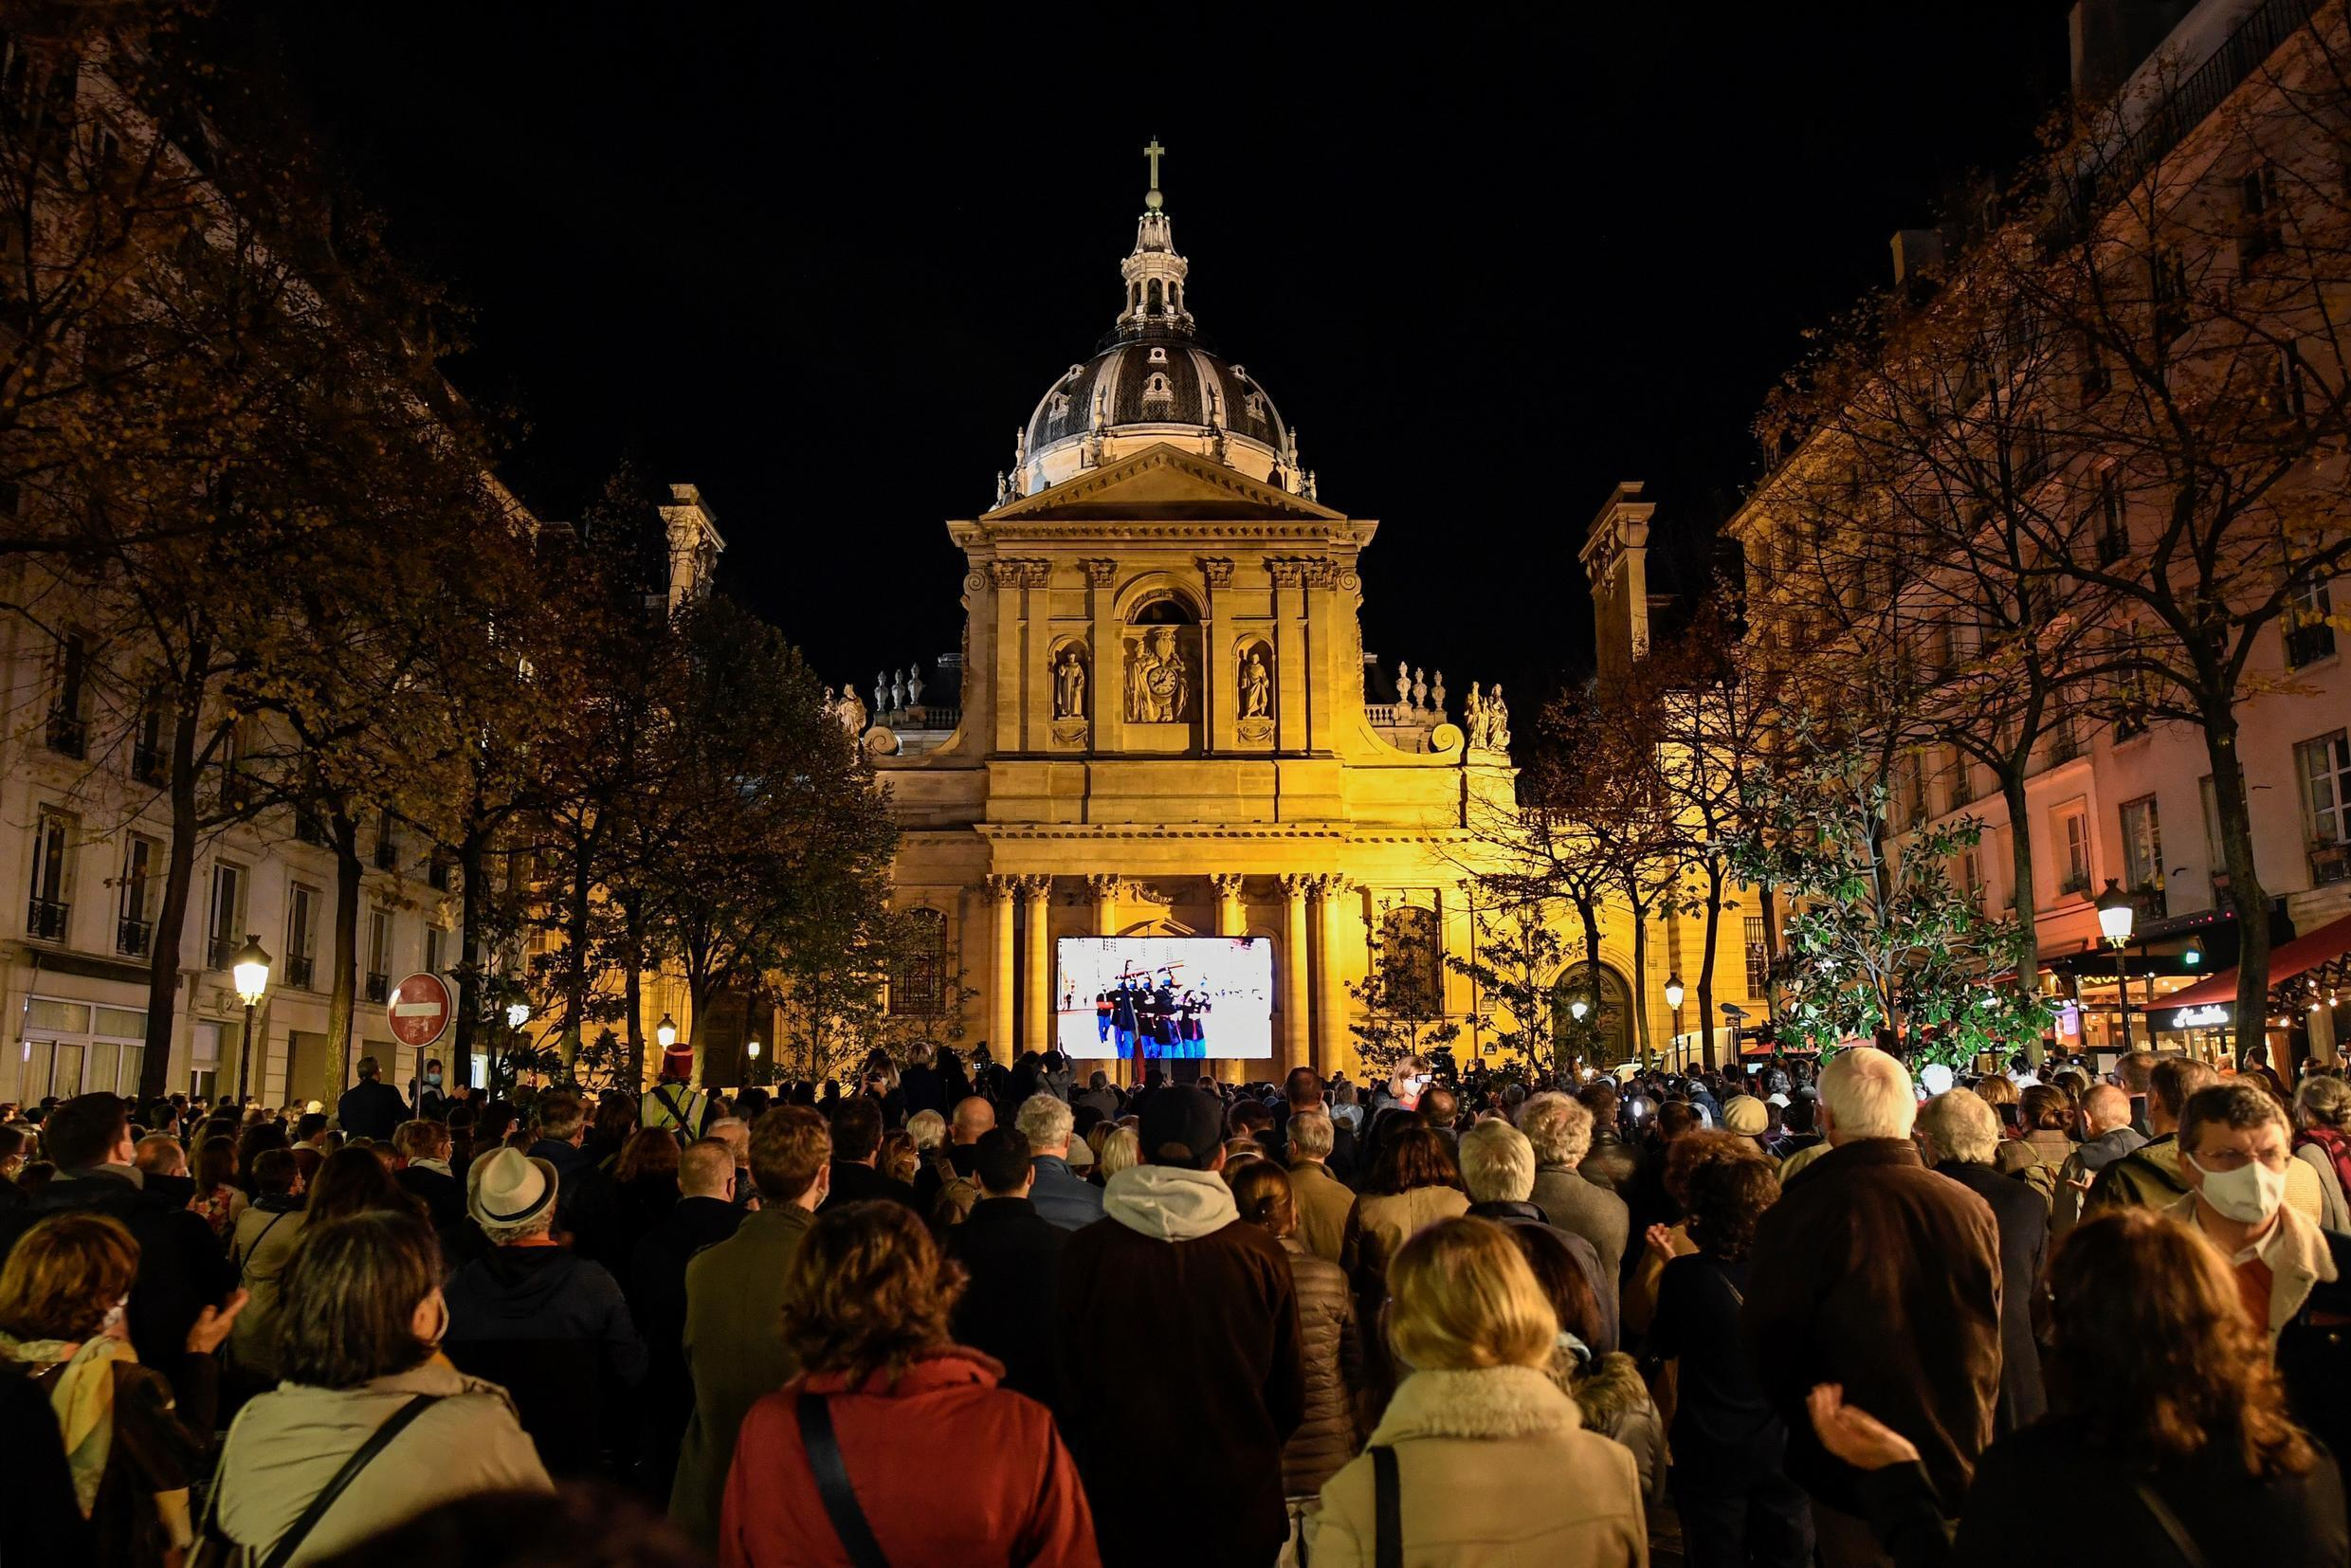 Hundreds gathered outside the Sorbonne University to watch the ceremony commemorating the murdered teacher